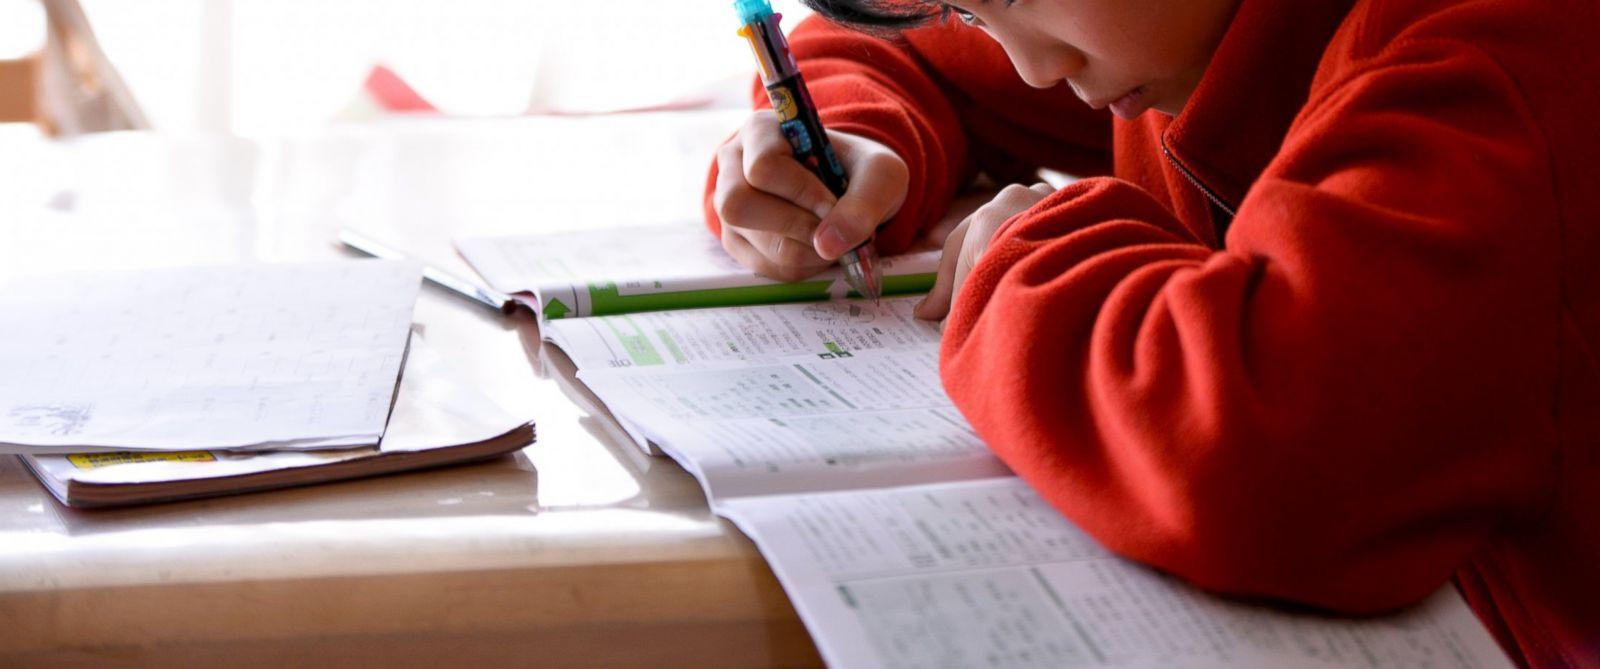 PHOOT: A Swedish town is mulling the idea of stopping homework for school children.